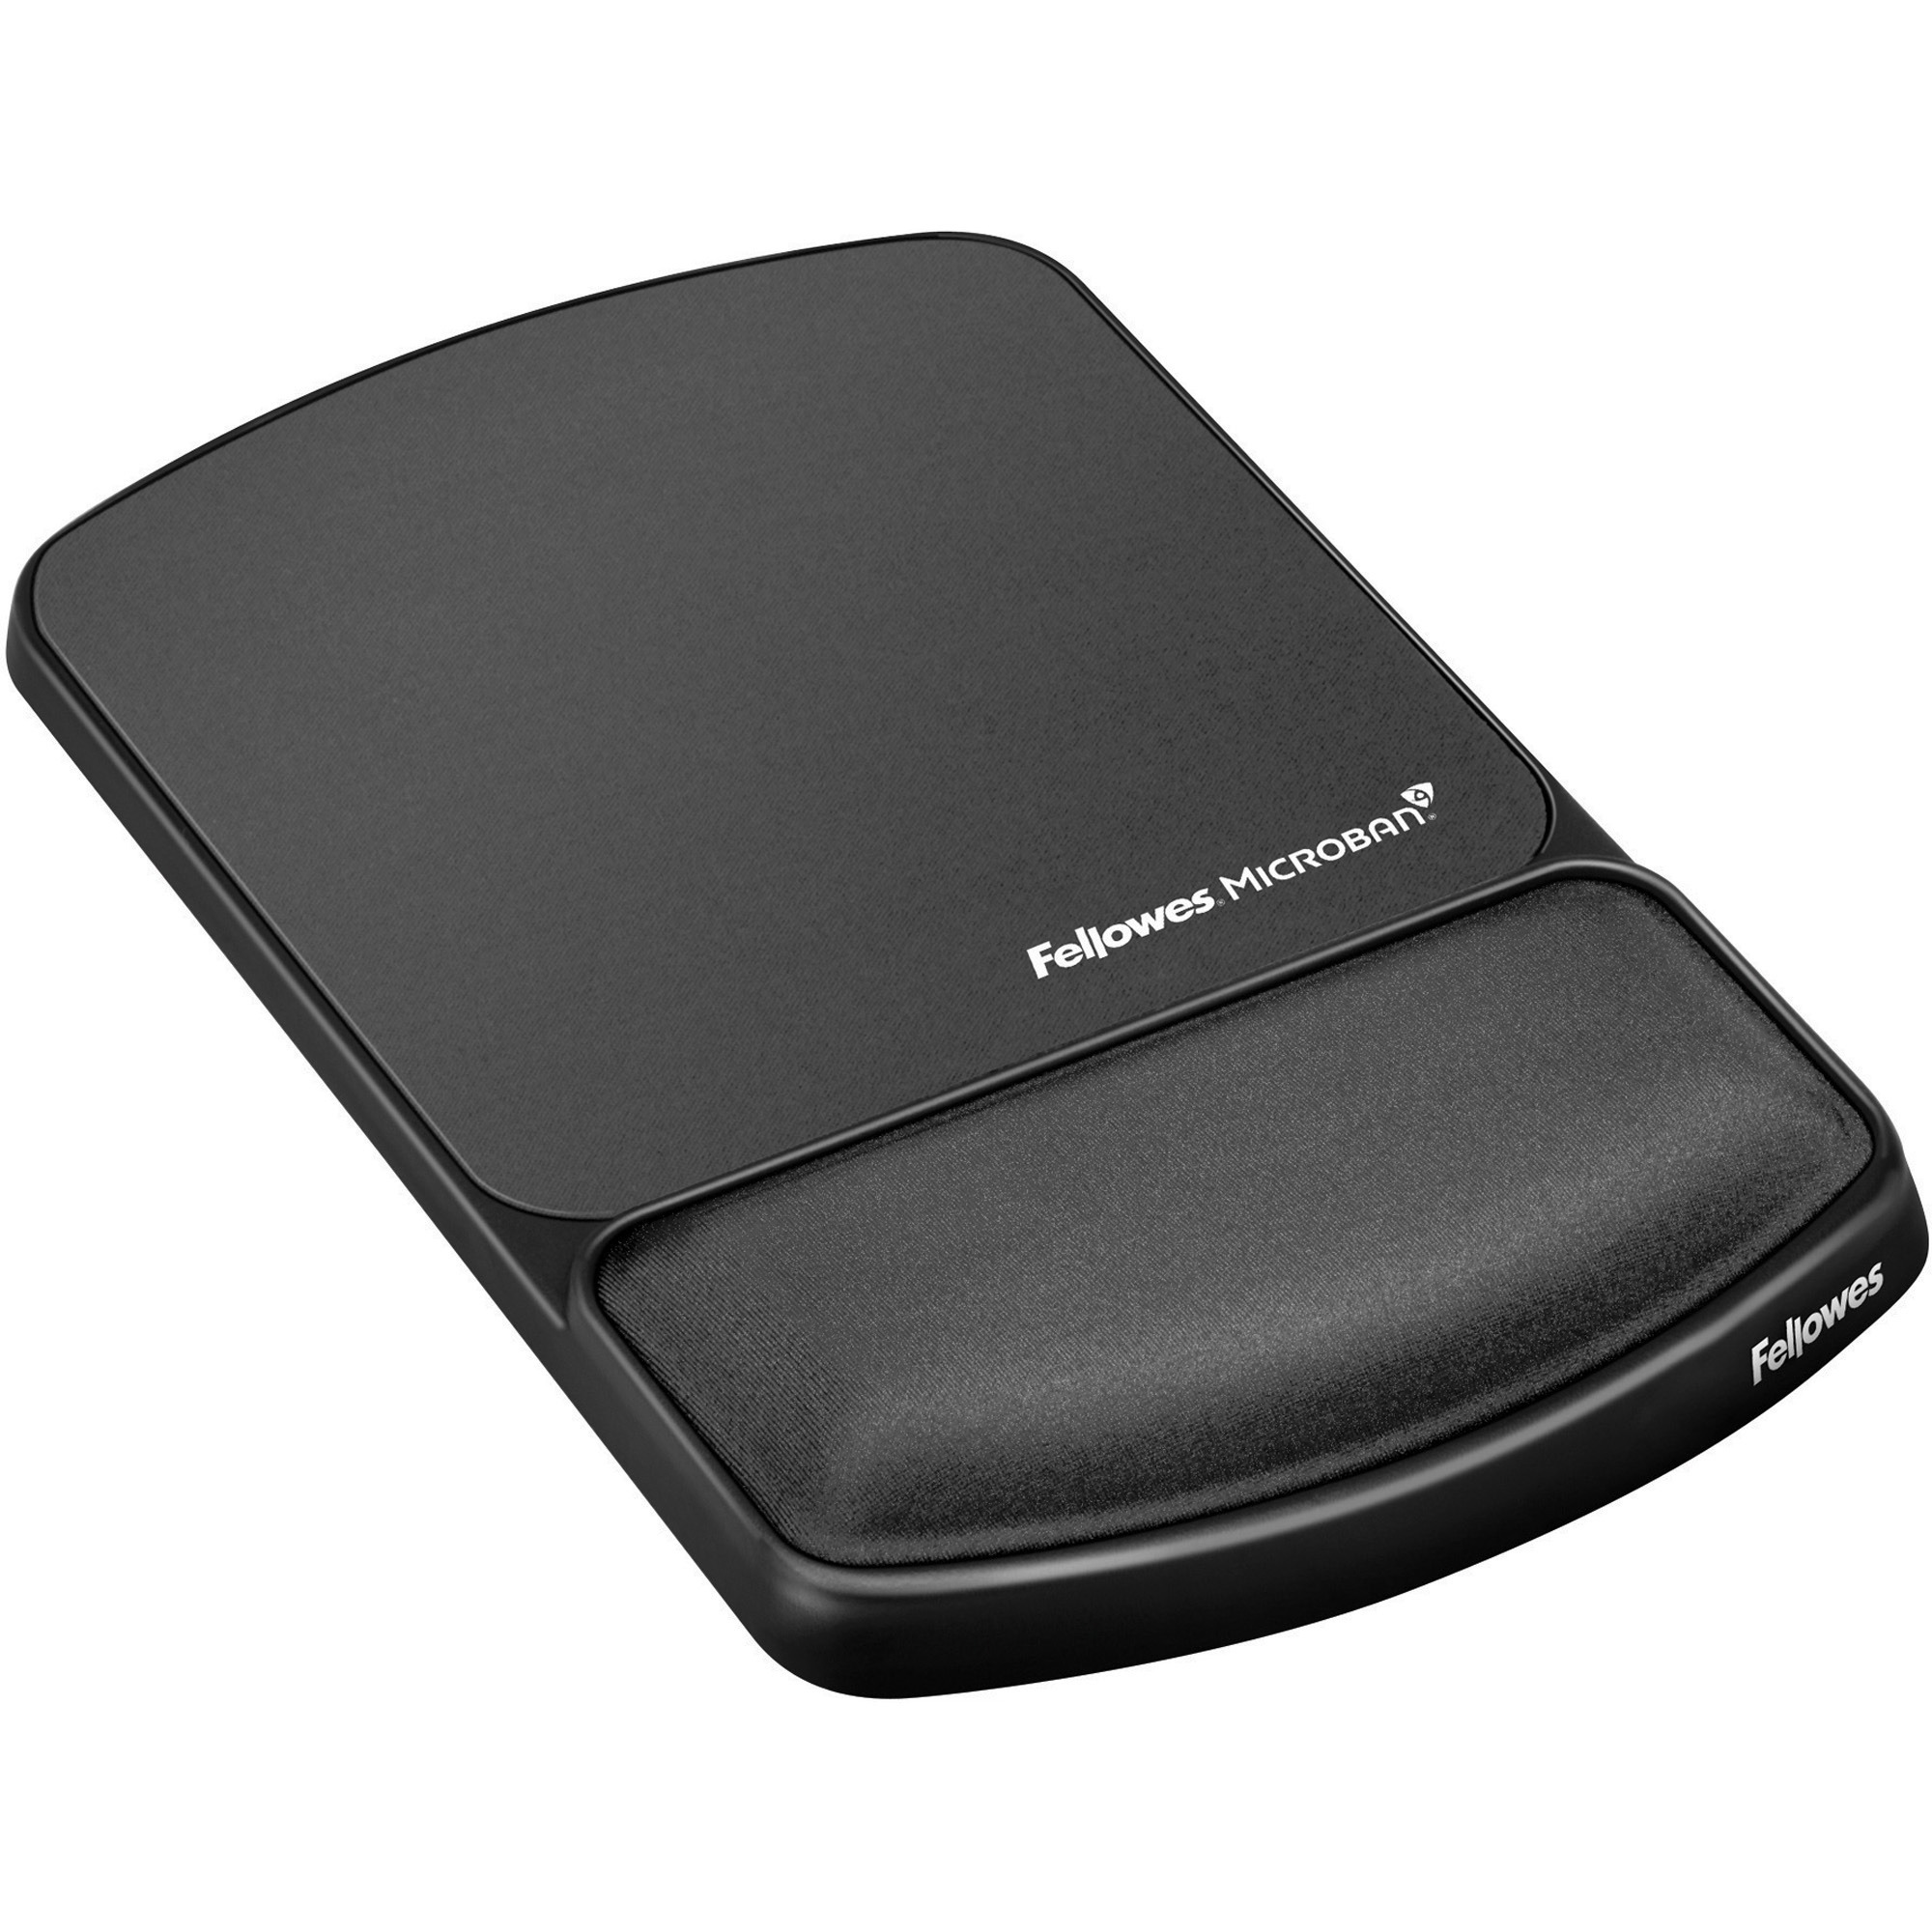 Fellowes, FEL9175101, Mouse Pad / Wrist Support with Microban® Protection, 1, Graphite